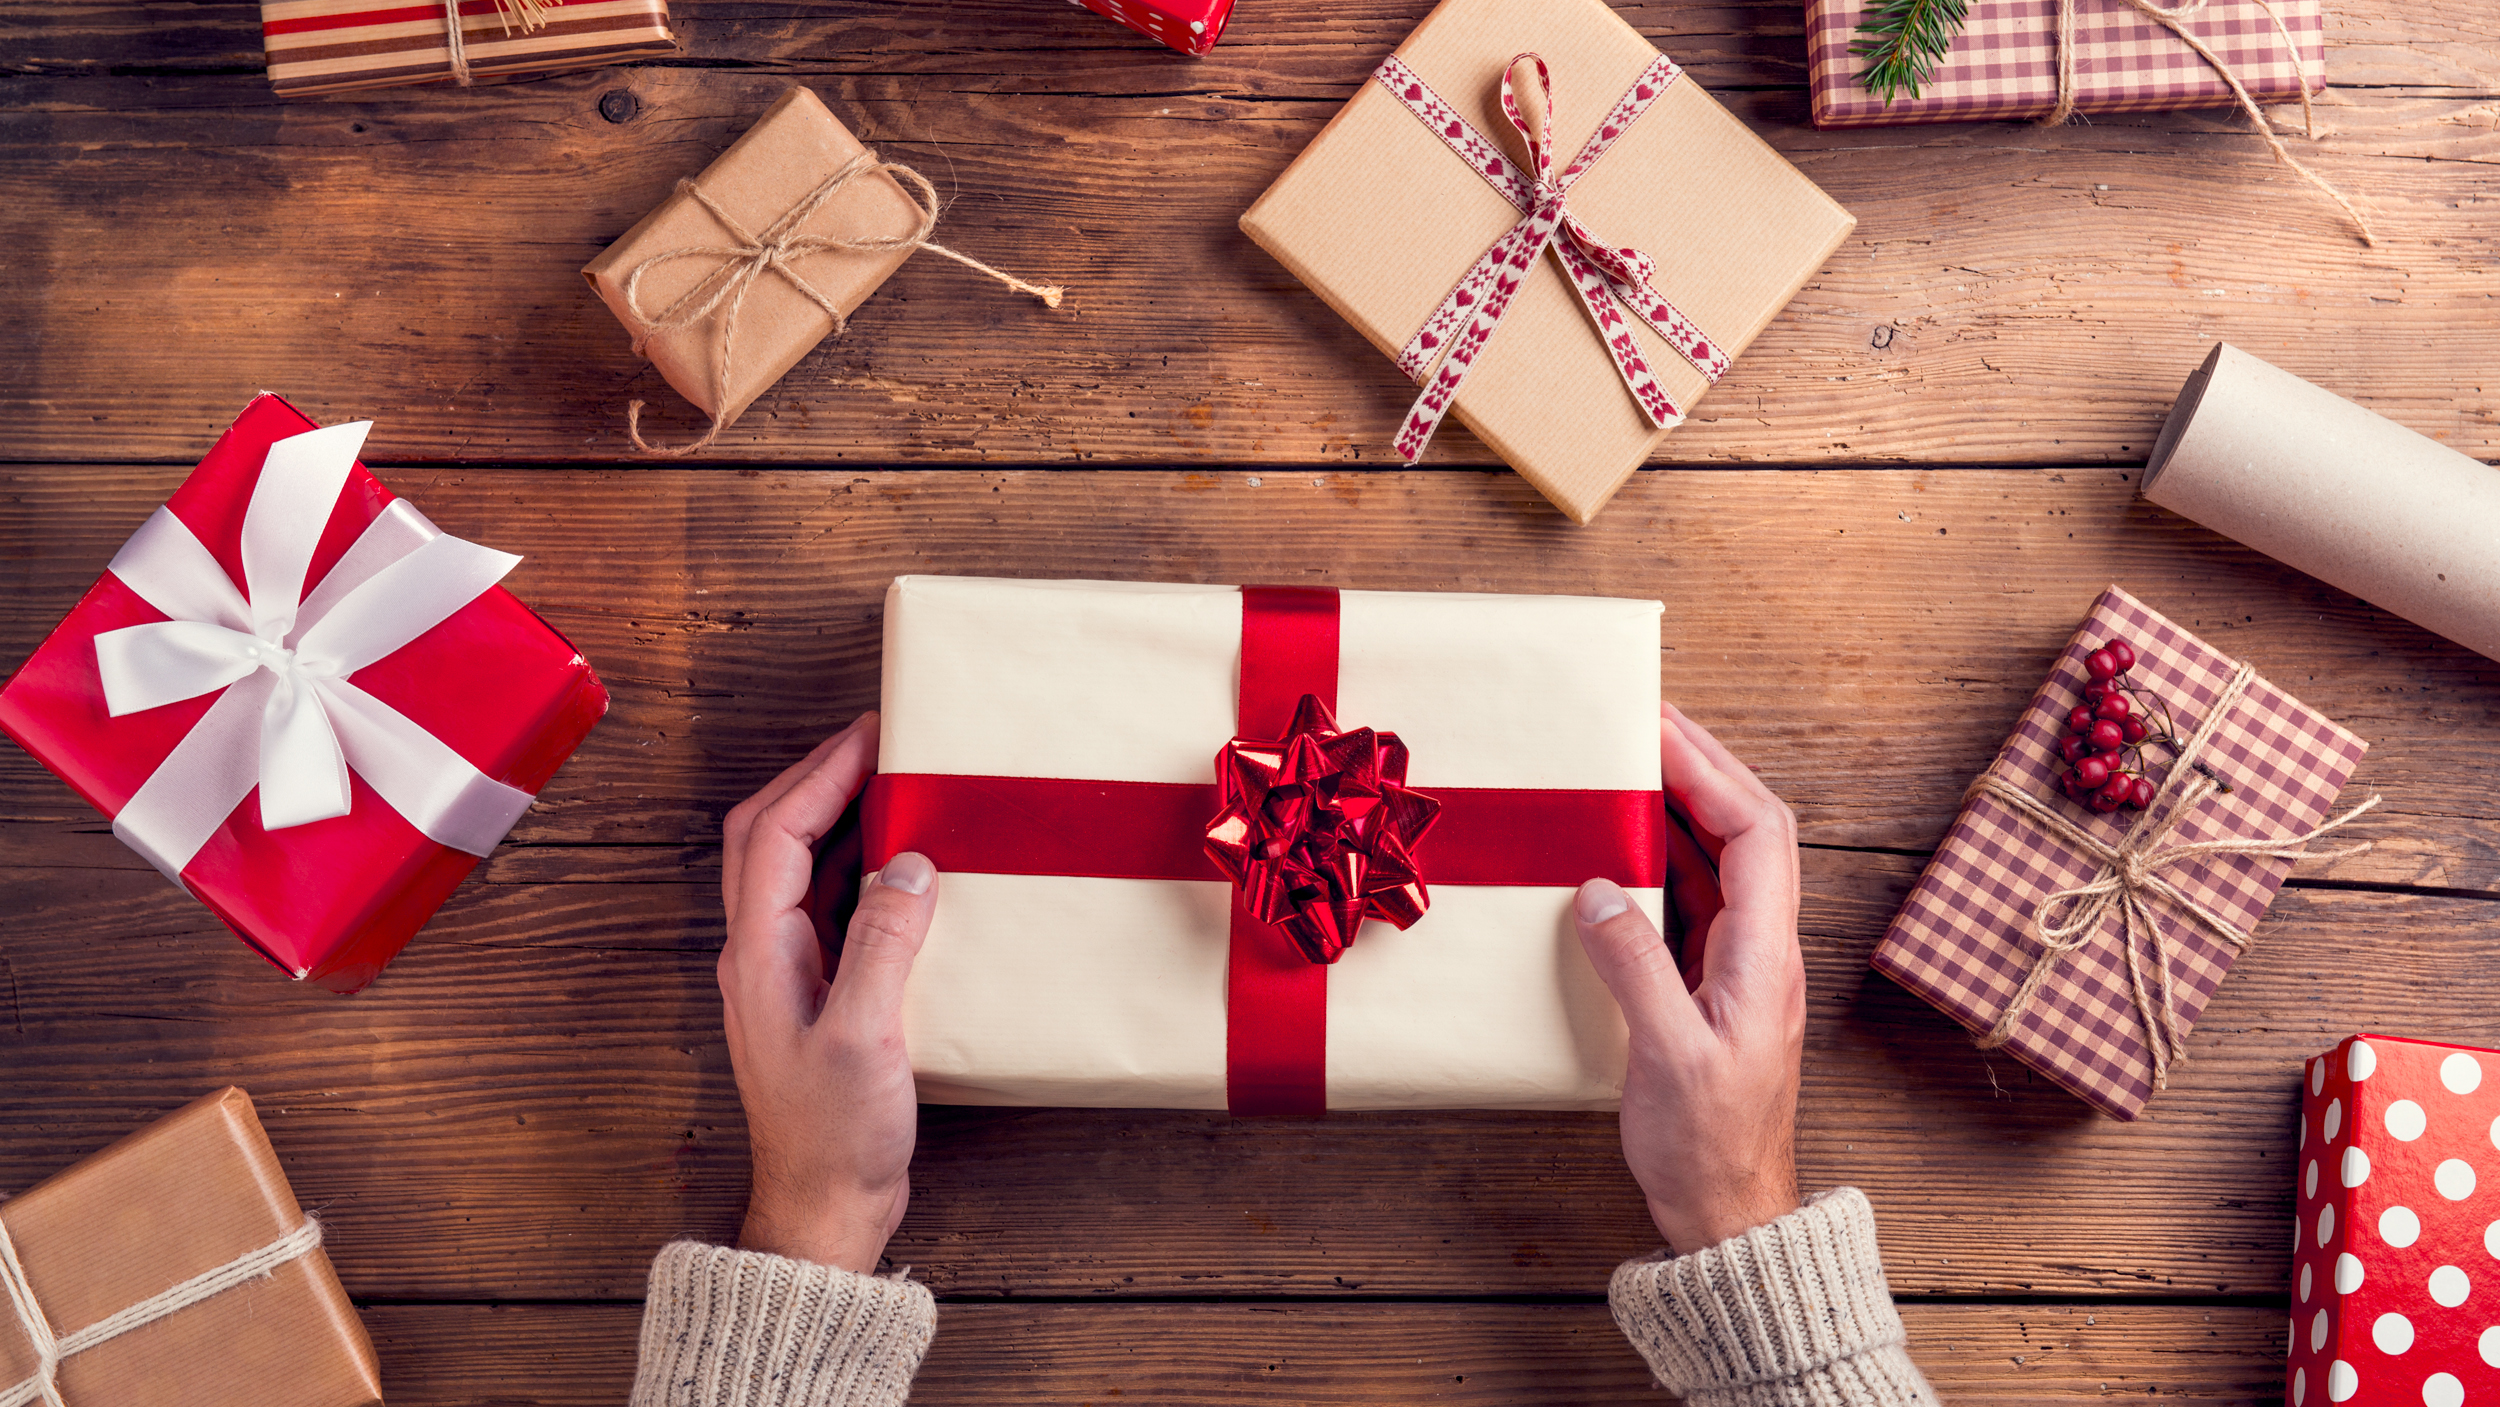 Sending Gifts Online Has Destroyed Our Culture Or Made Easy to Reduce Physical Effort